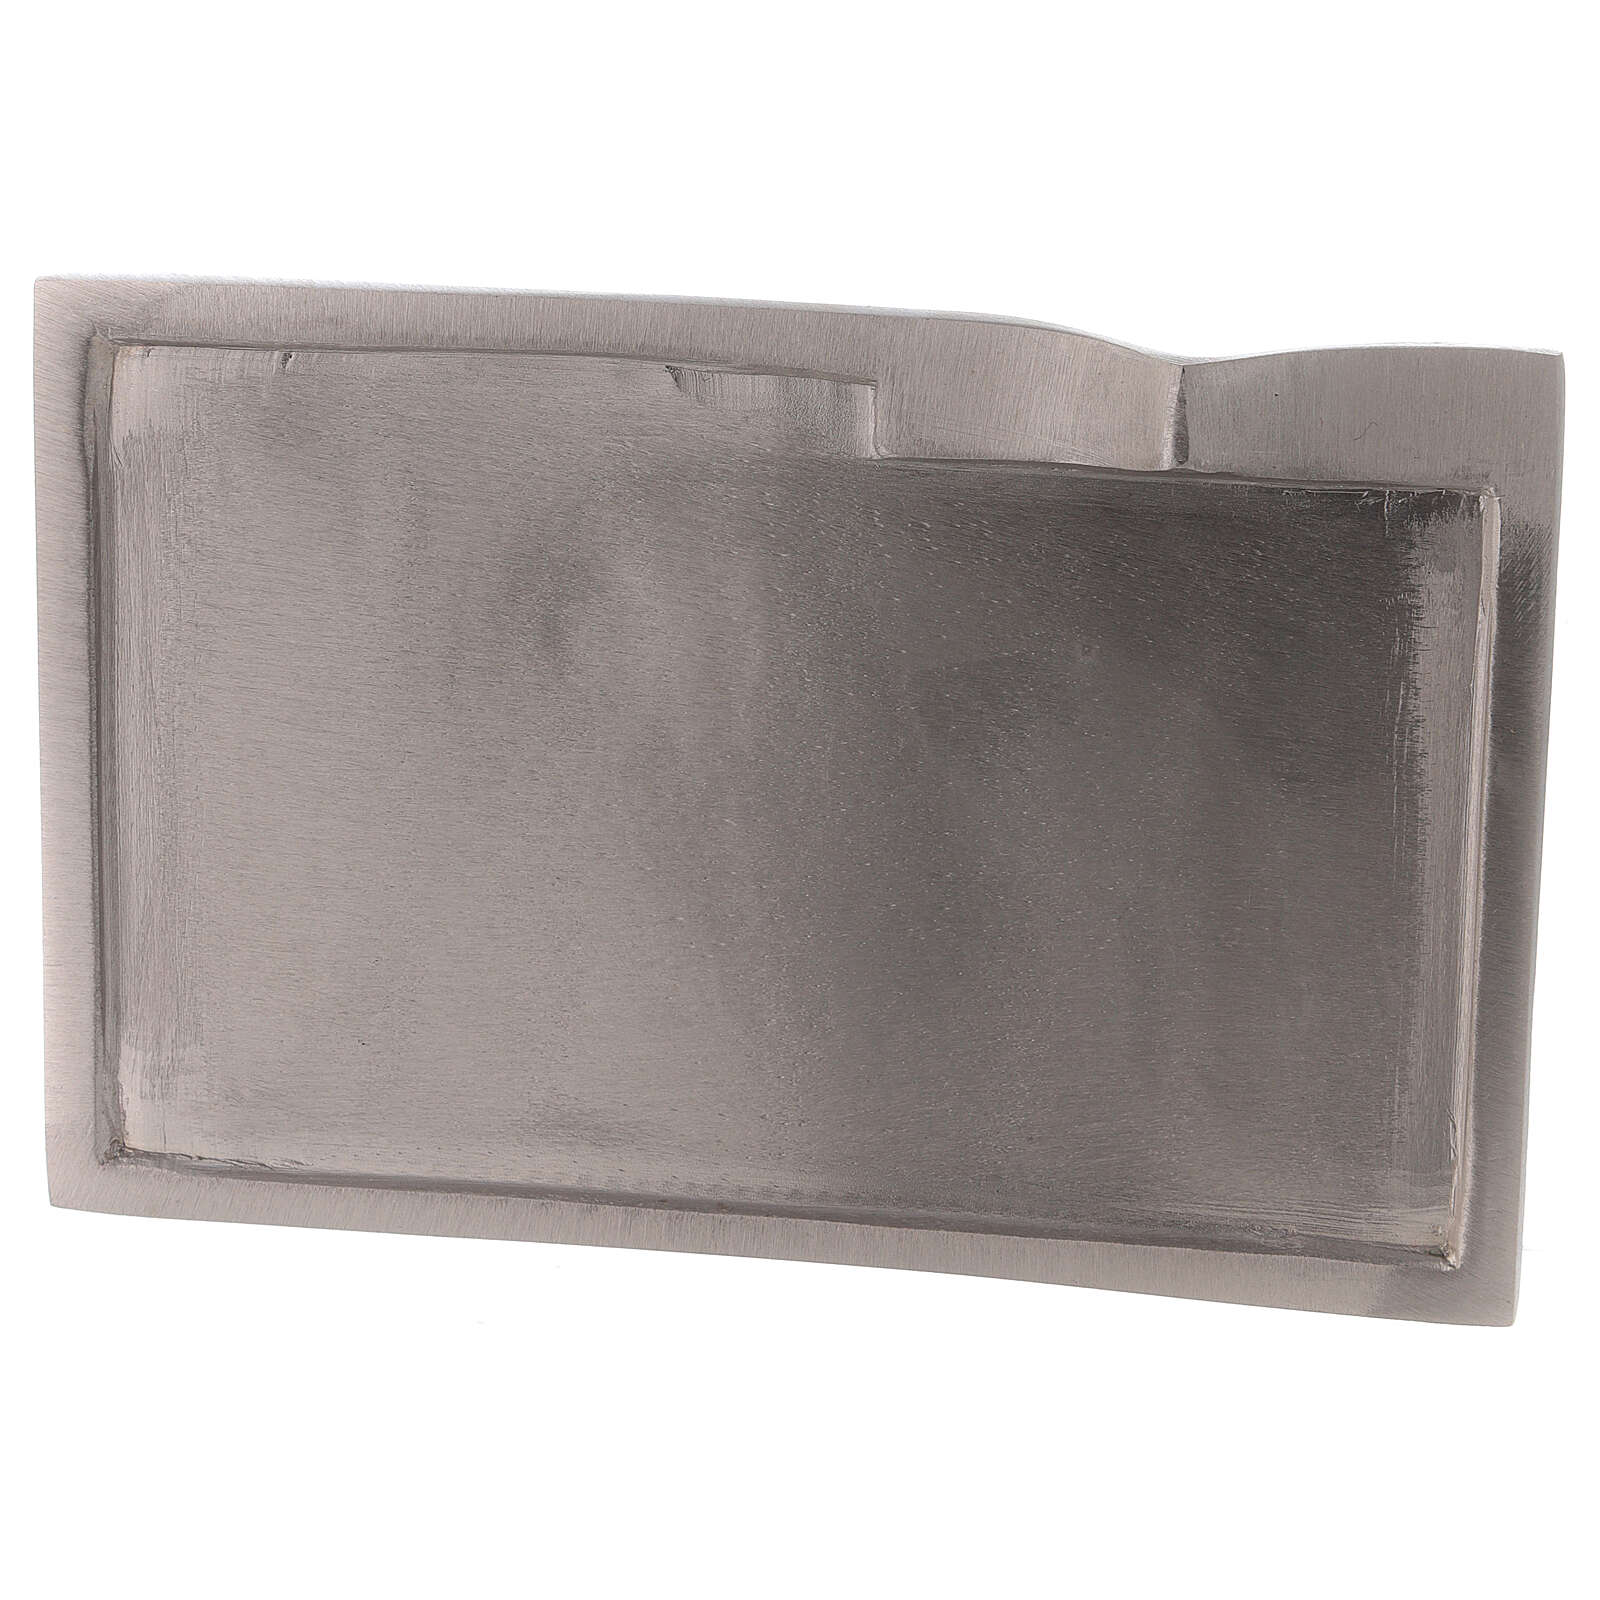 Rectangular plate for candles raised detail 6 1/4x3 1/2 in 3